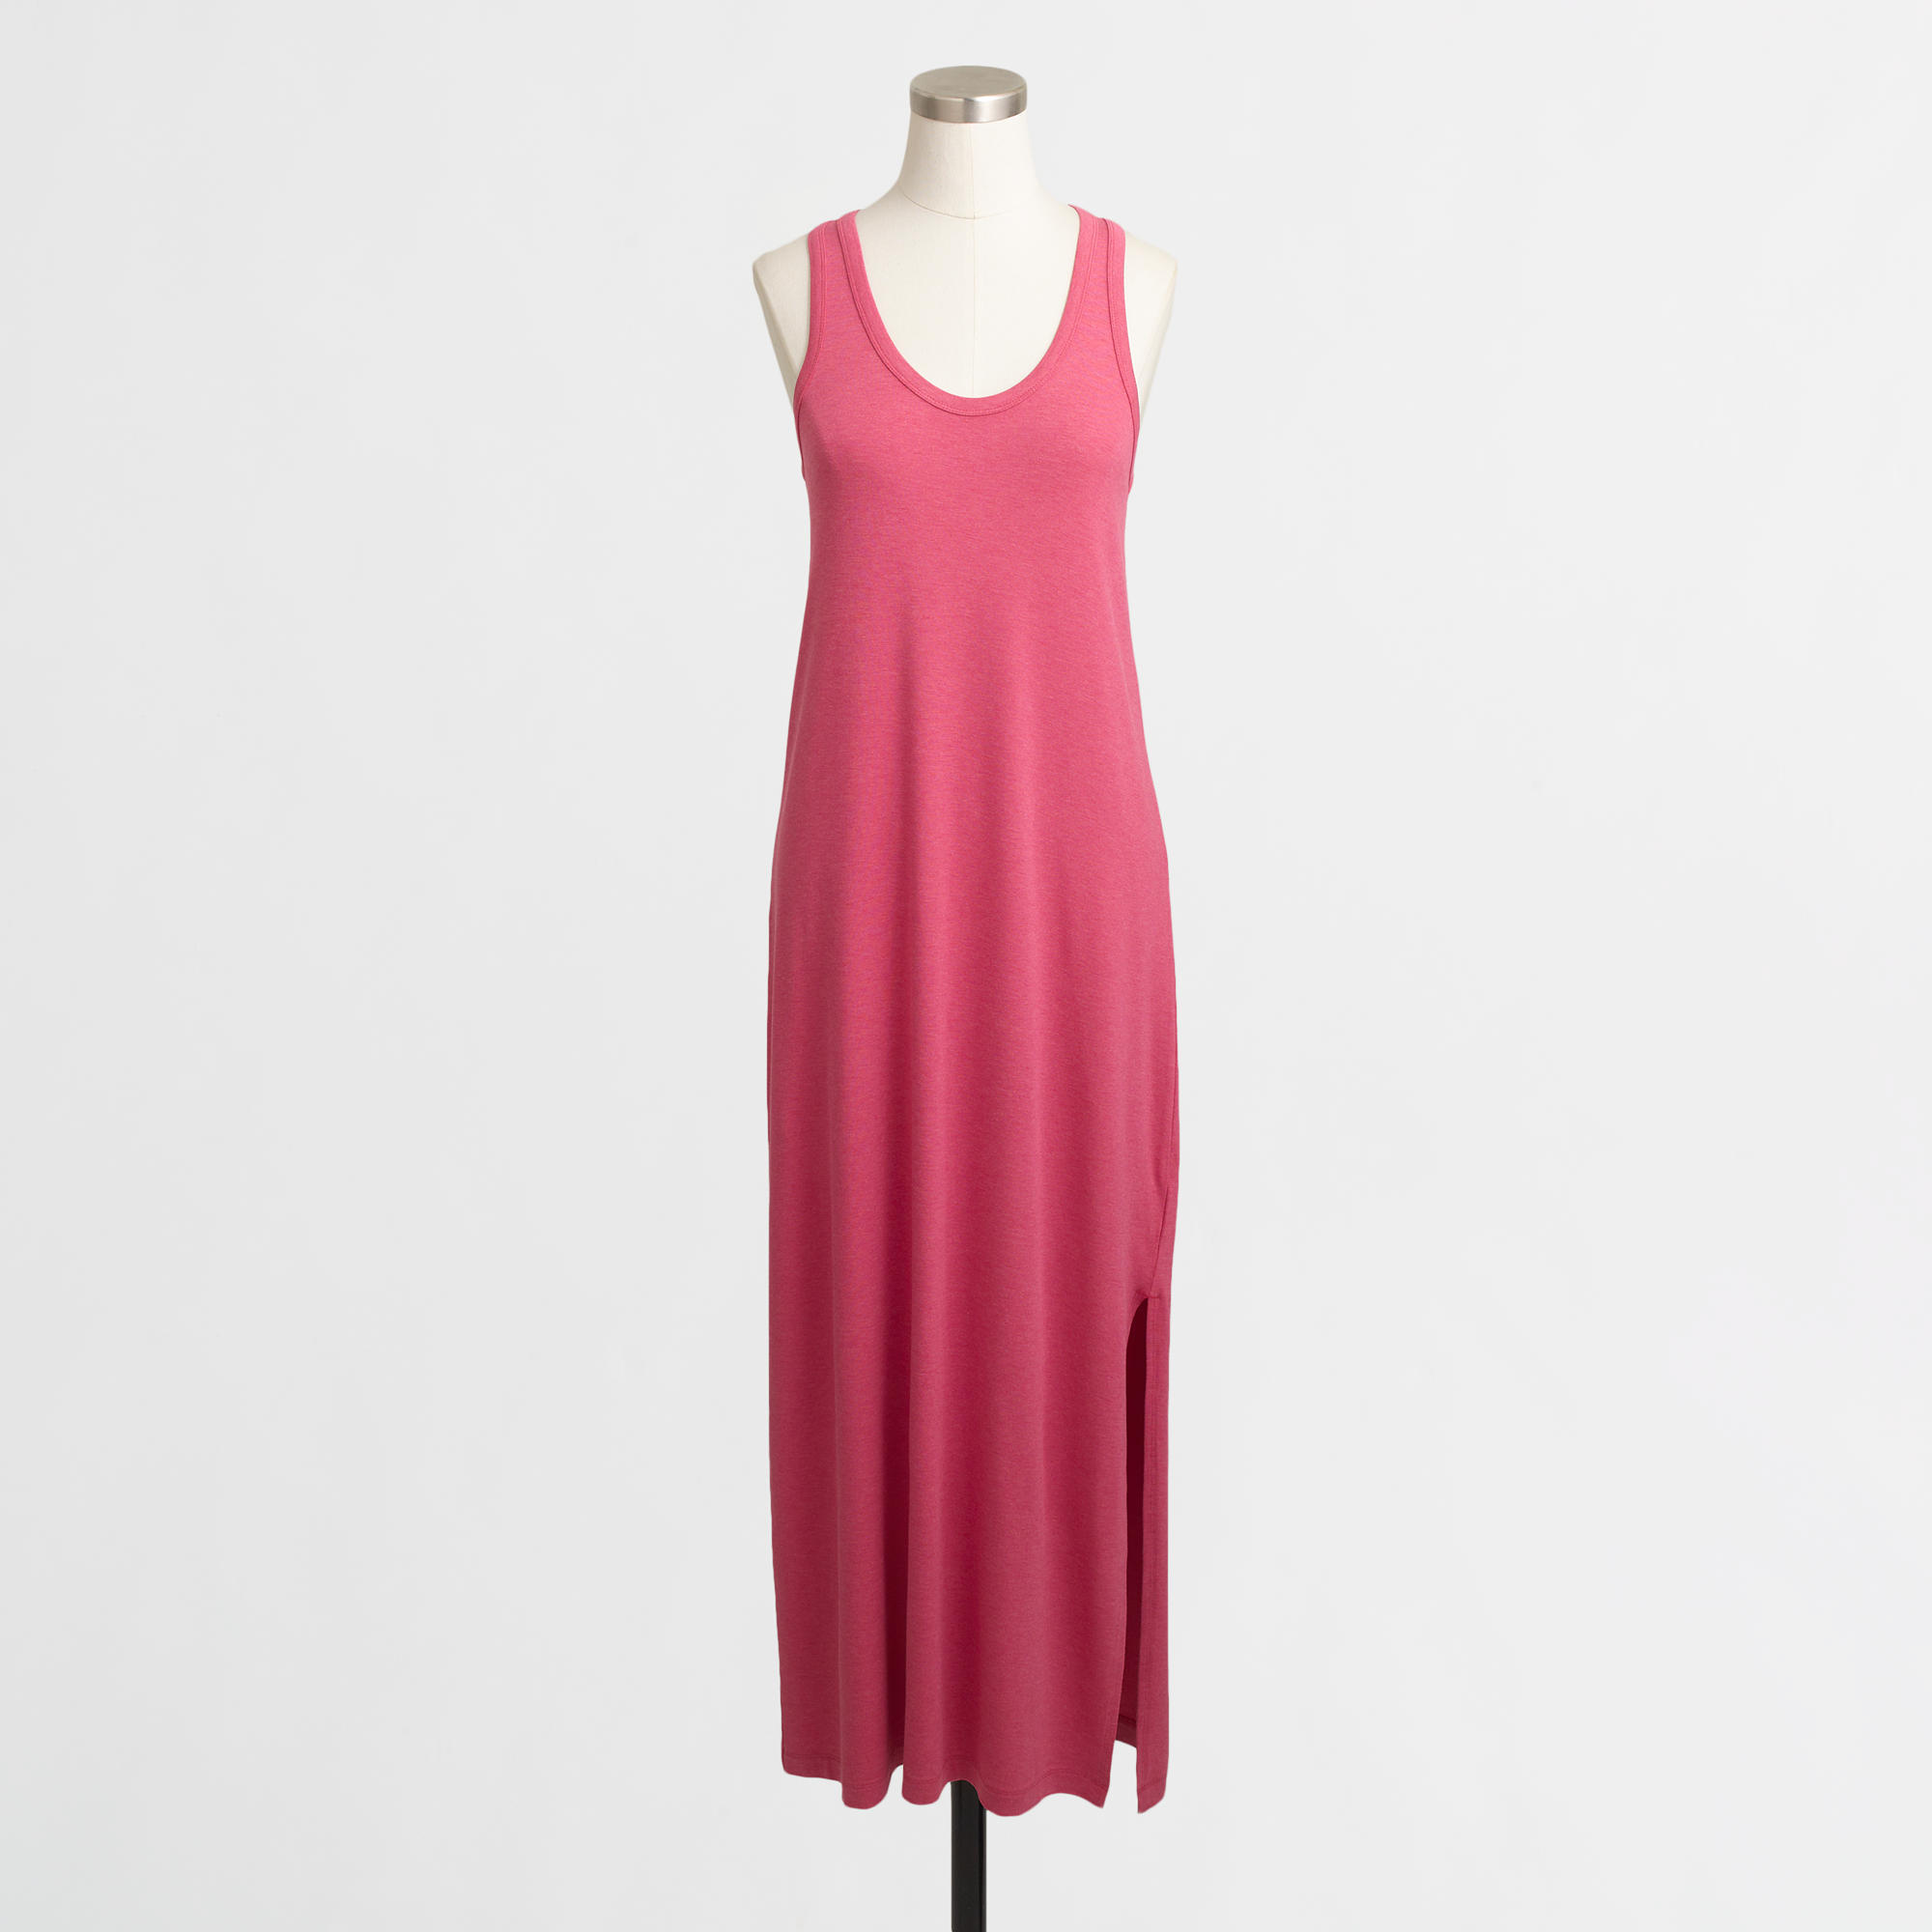 J.Crew Factory Women's Knit Racerback Solid Maxi Dress